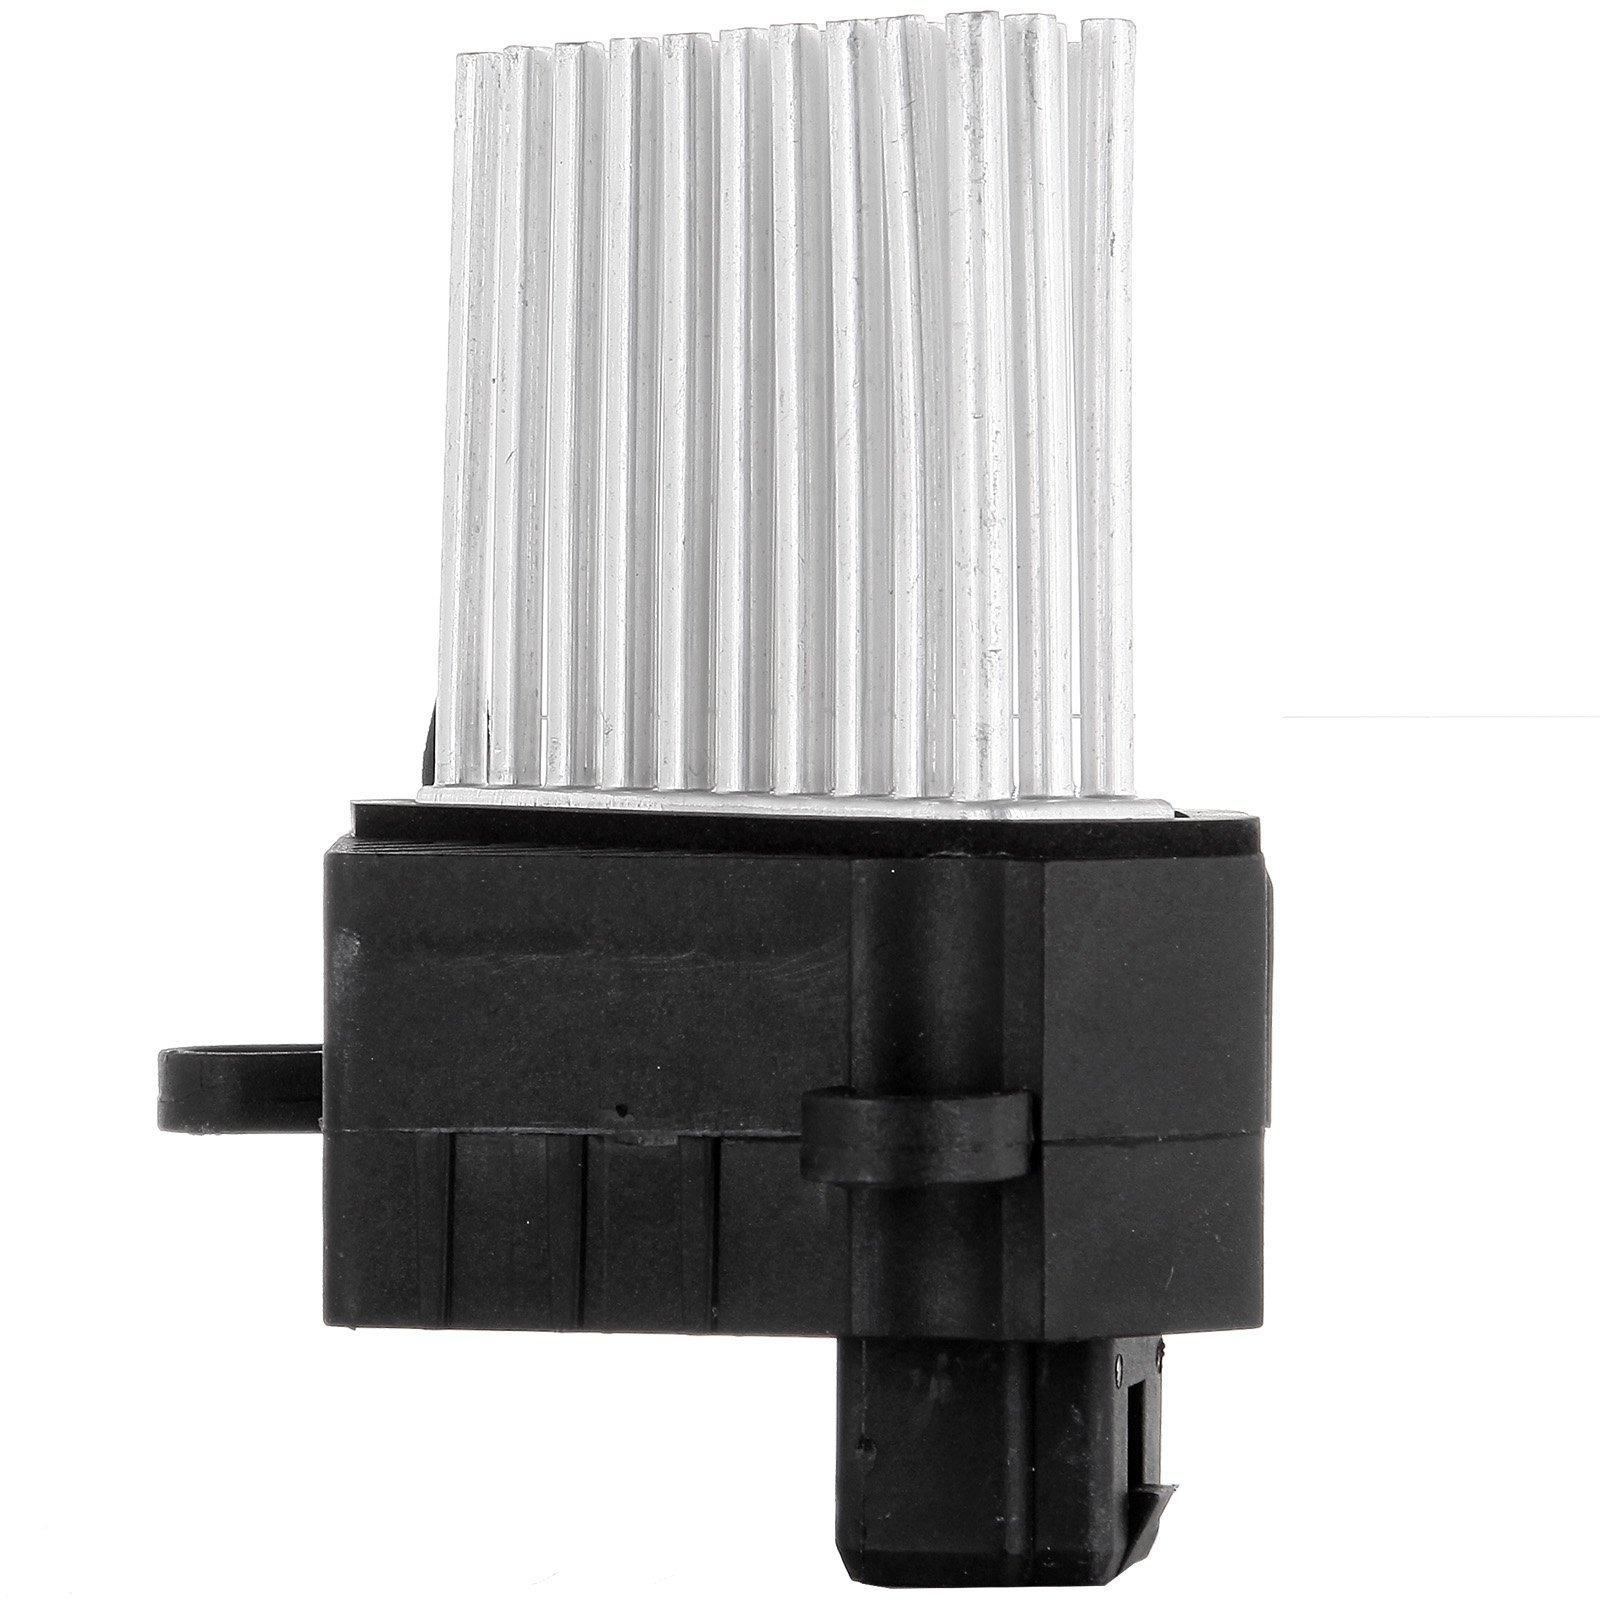 Heater Blower Motor Fan Resistor Air Conditioning Replacement Parts ECCPP fit for 2000-2000 BMW 323Ci /1999-2000 BMW 323i /2001-2006 BMW 325Ci /2001-2005 BMW 325i /2001-2005 BMW 325xi